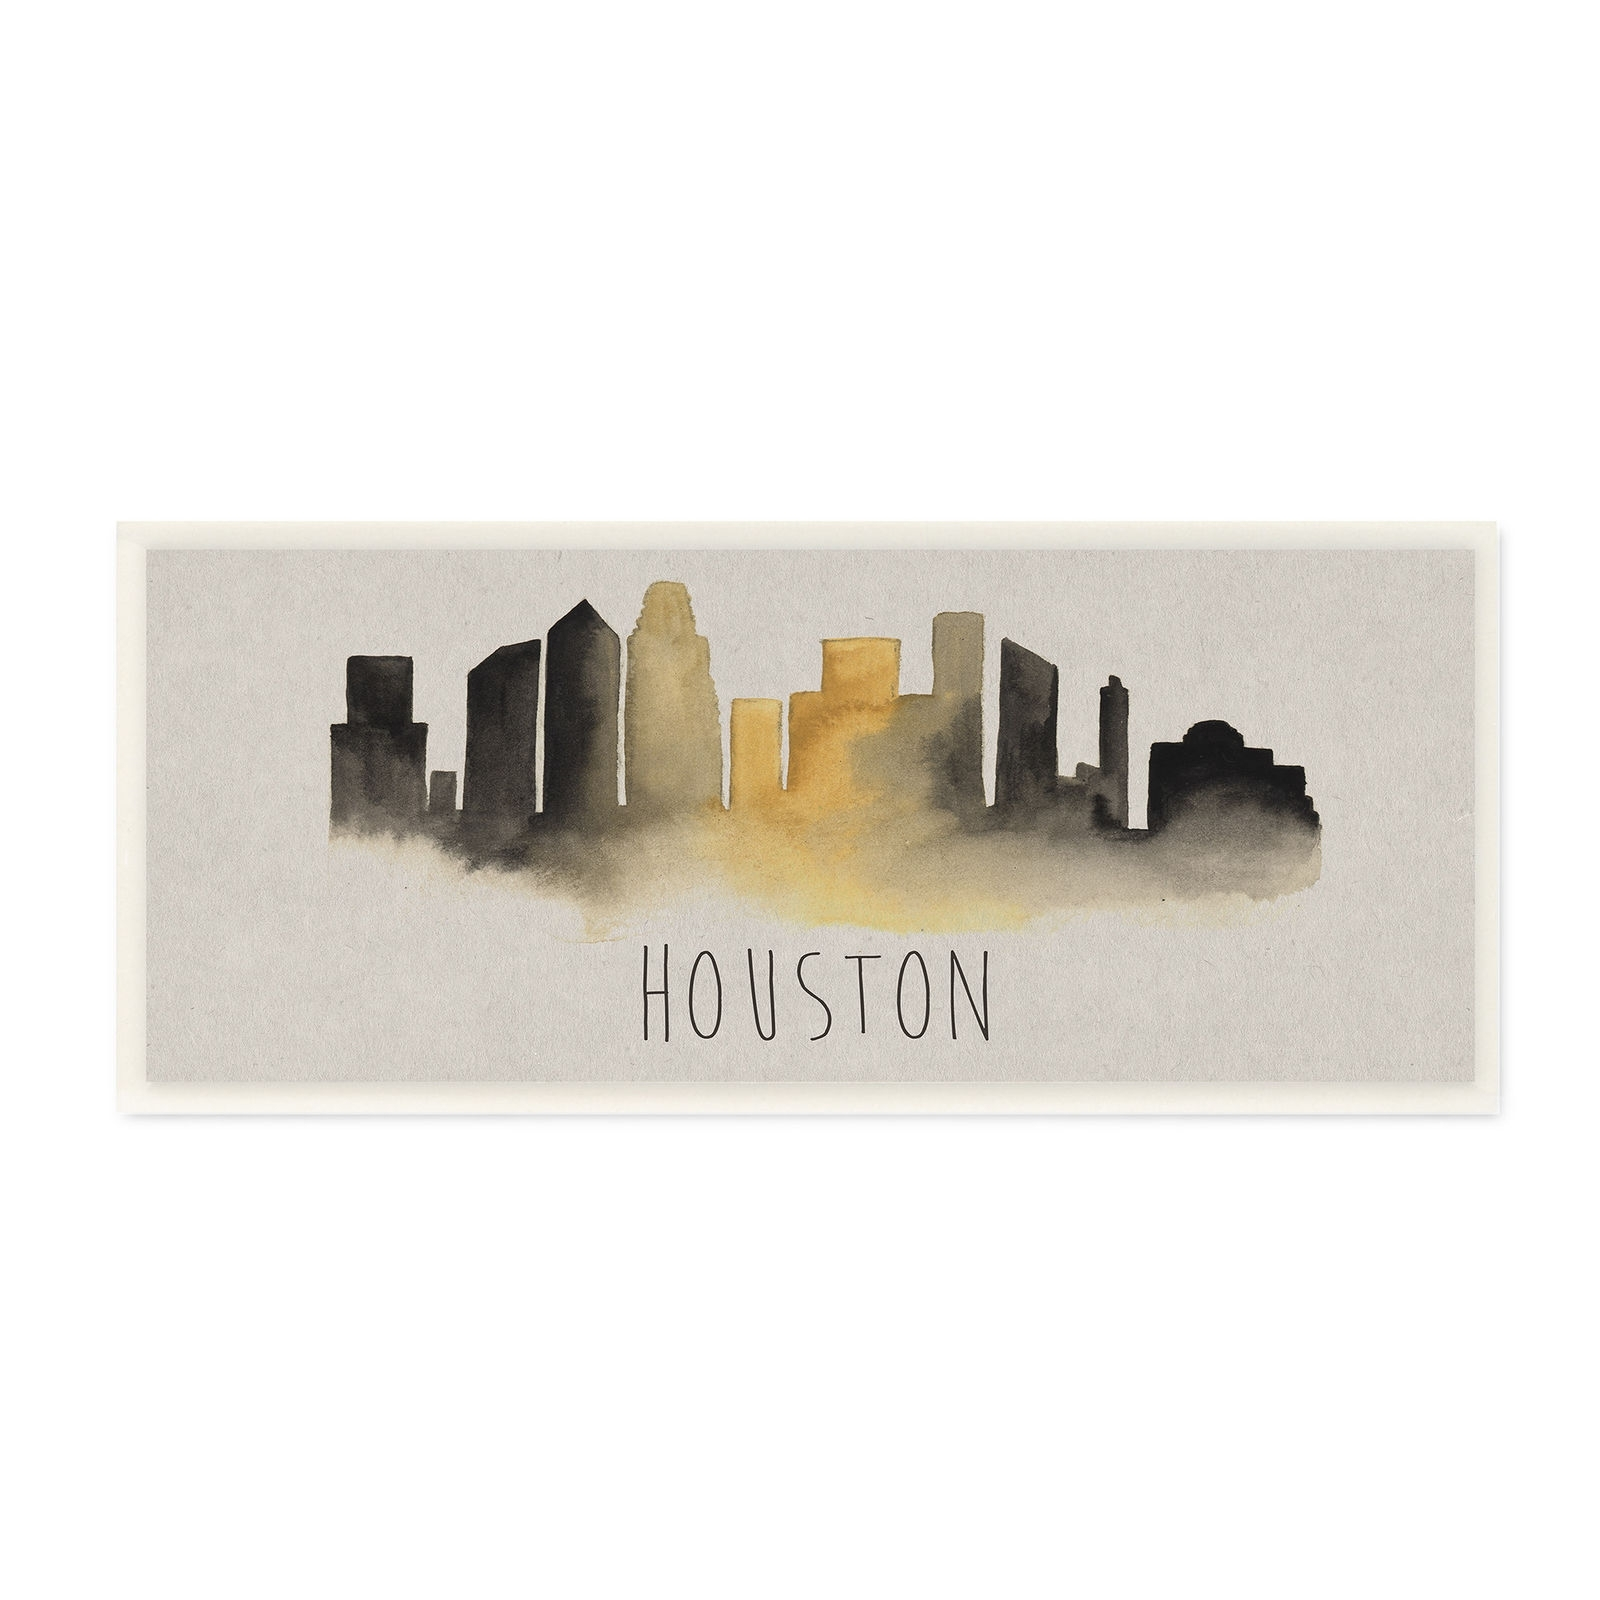 Houston Skyline Silhouette Stretched Canvas Wall Art Id 3455516 | Ebay For Current Houston Canvas Wall Art (Gallery 12 of 15)